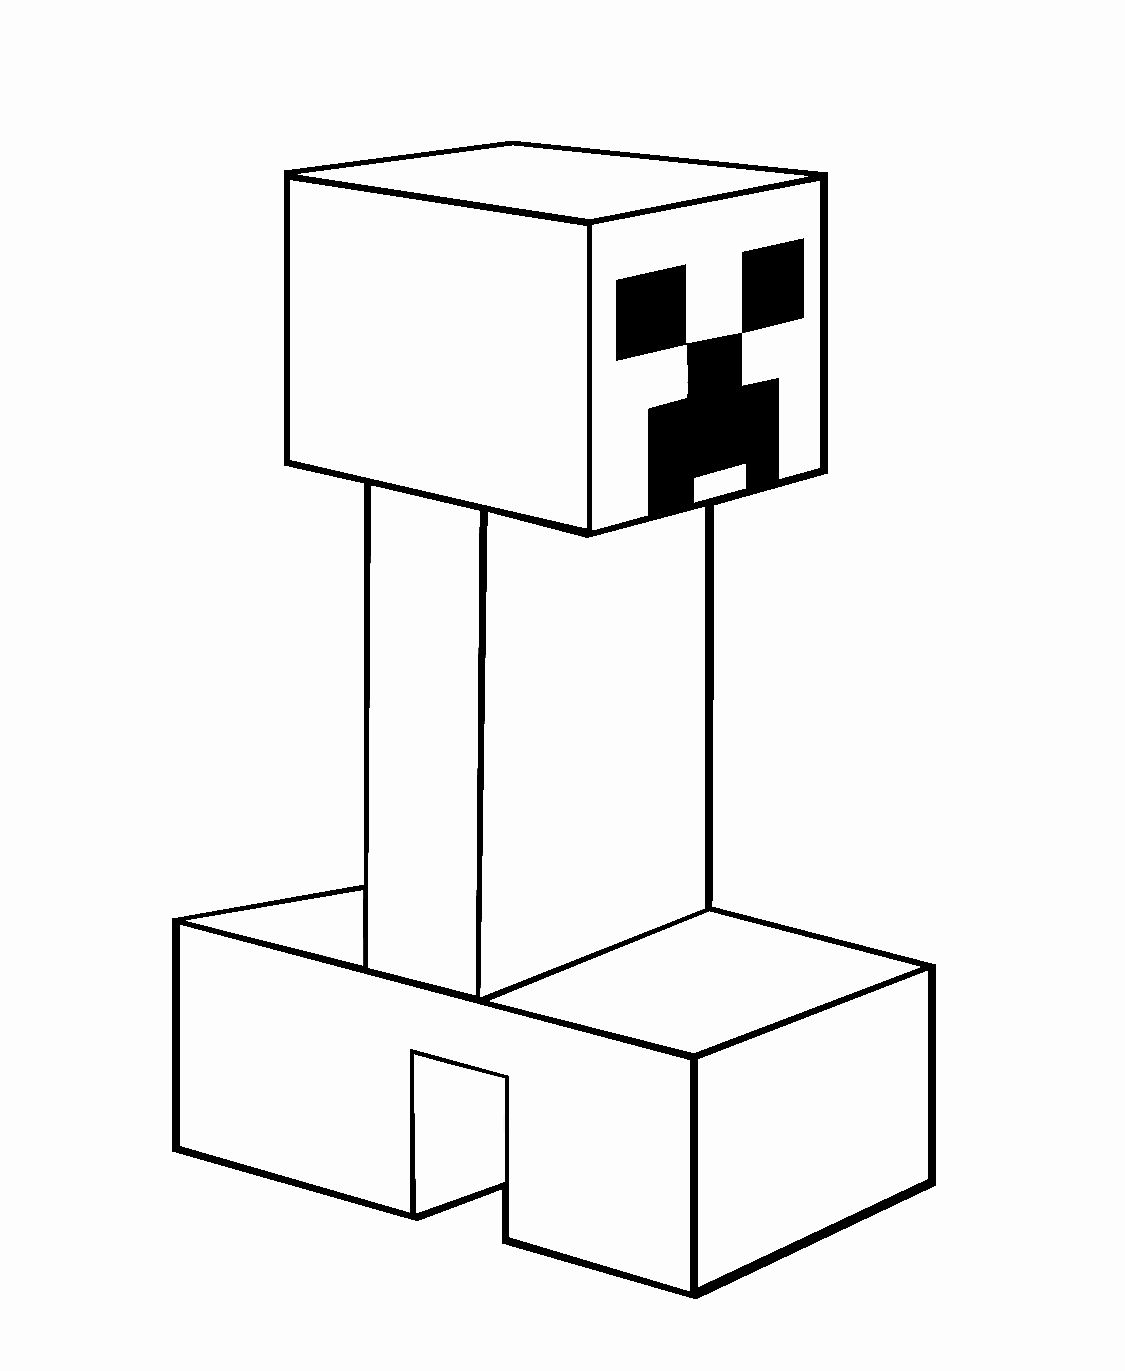 Minecraft Creeper Coloring Page Inspirational Minecraft Coloring Pages Minecraft Coloring Pages Cars Coloring Pages Coloring Pages Inspirational